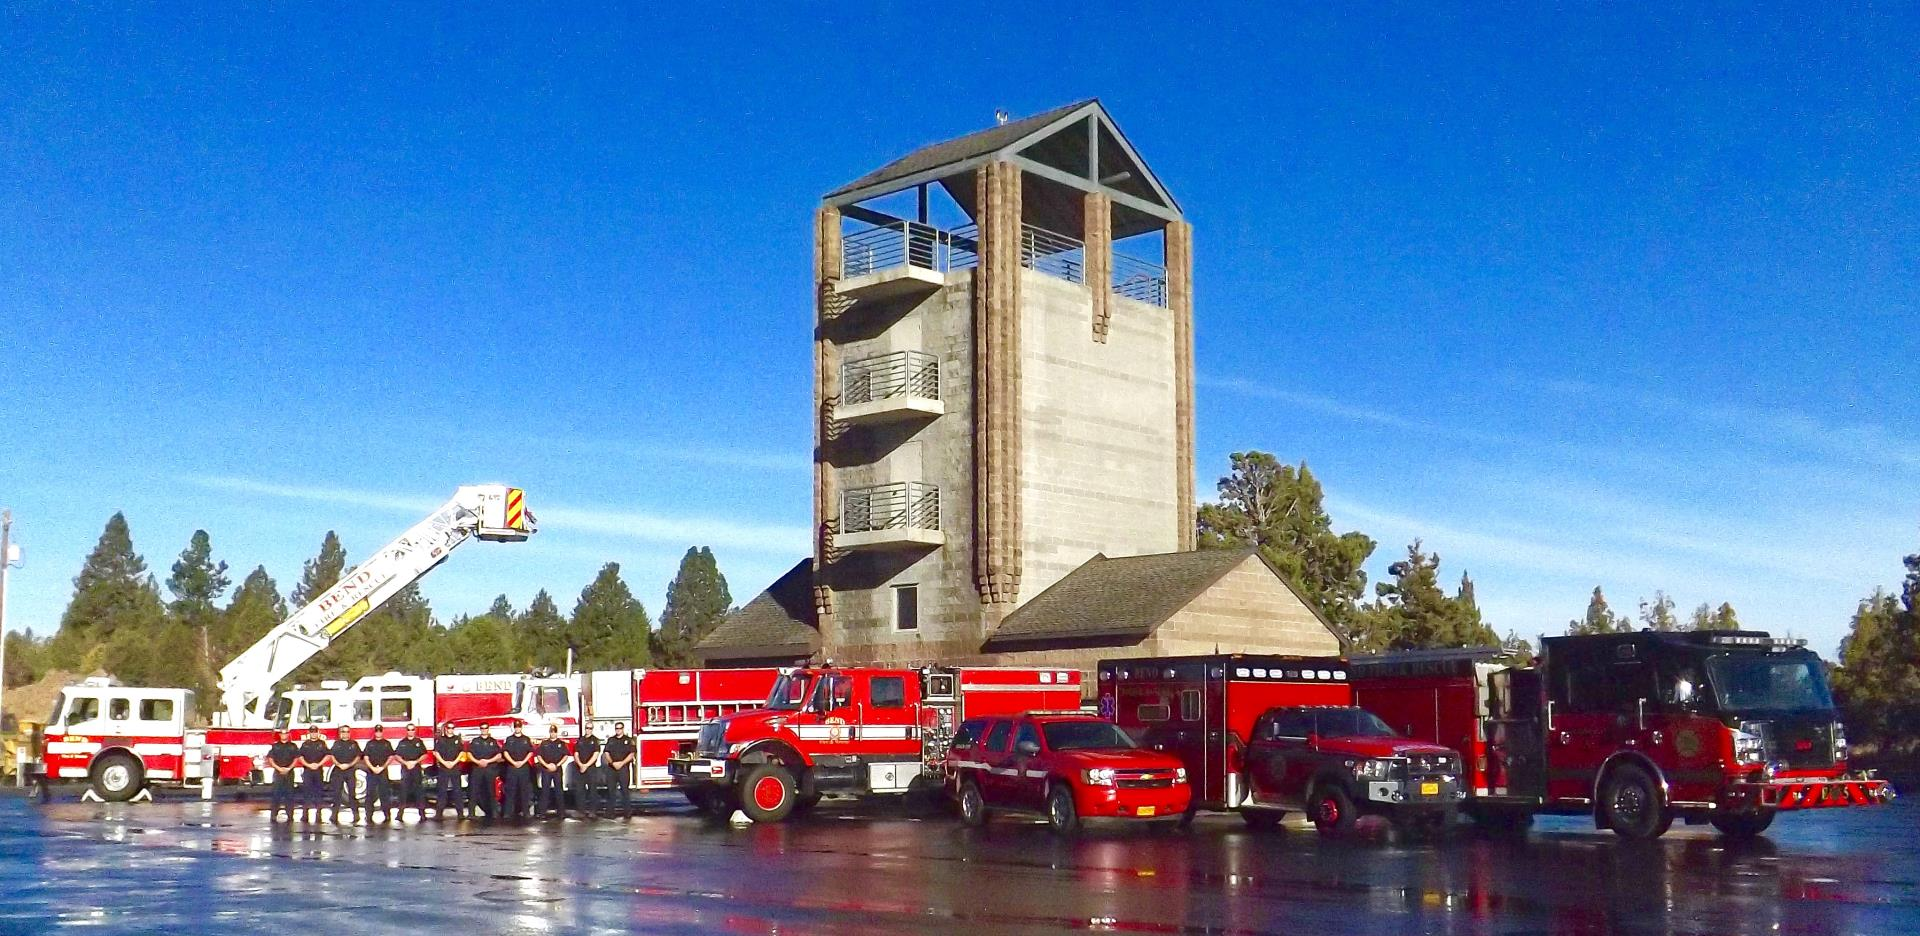 Bend Fire Department apparatus and team on training site.